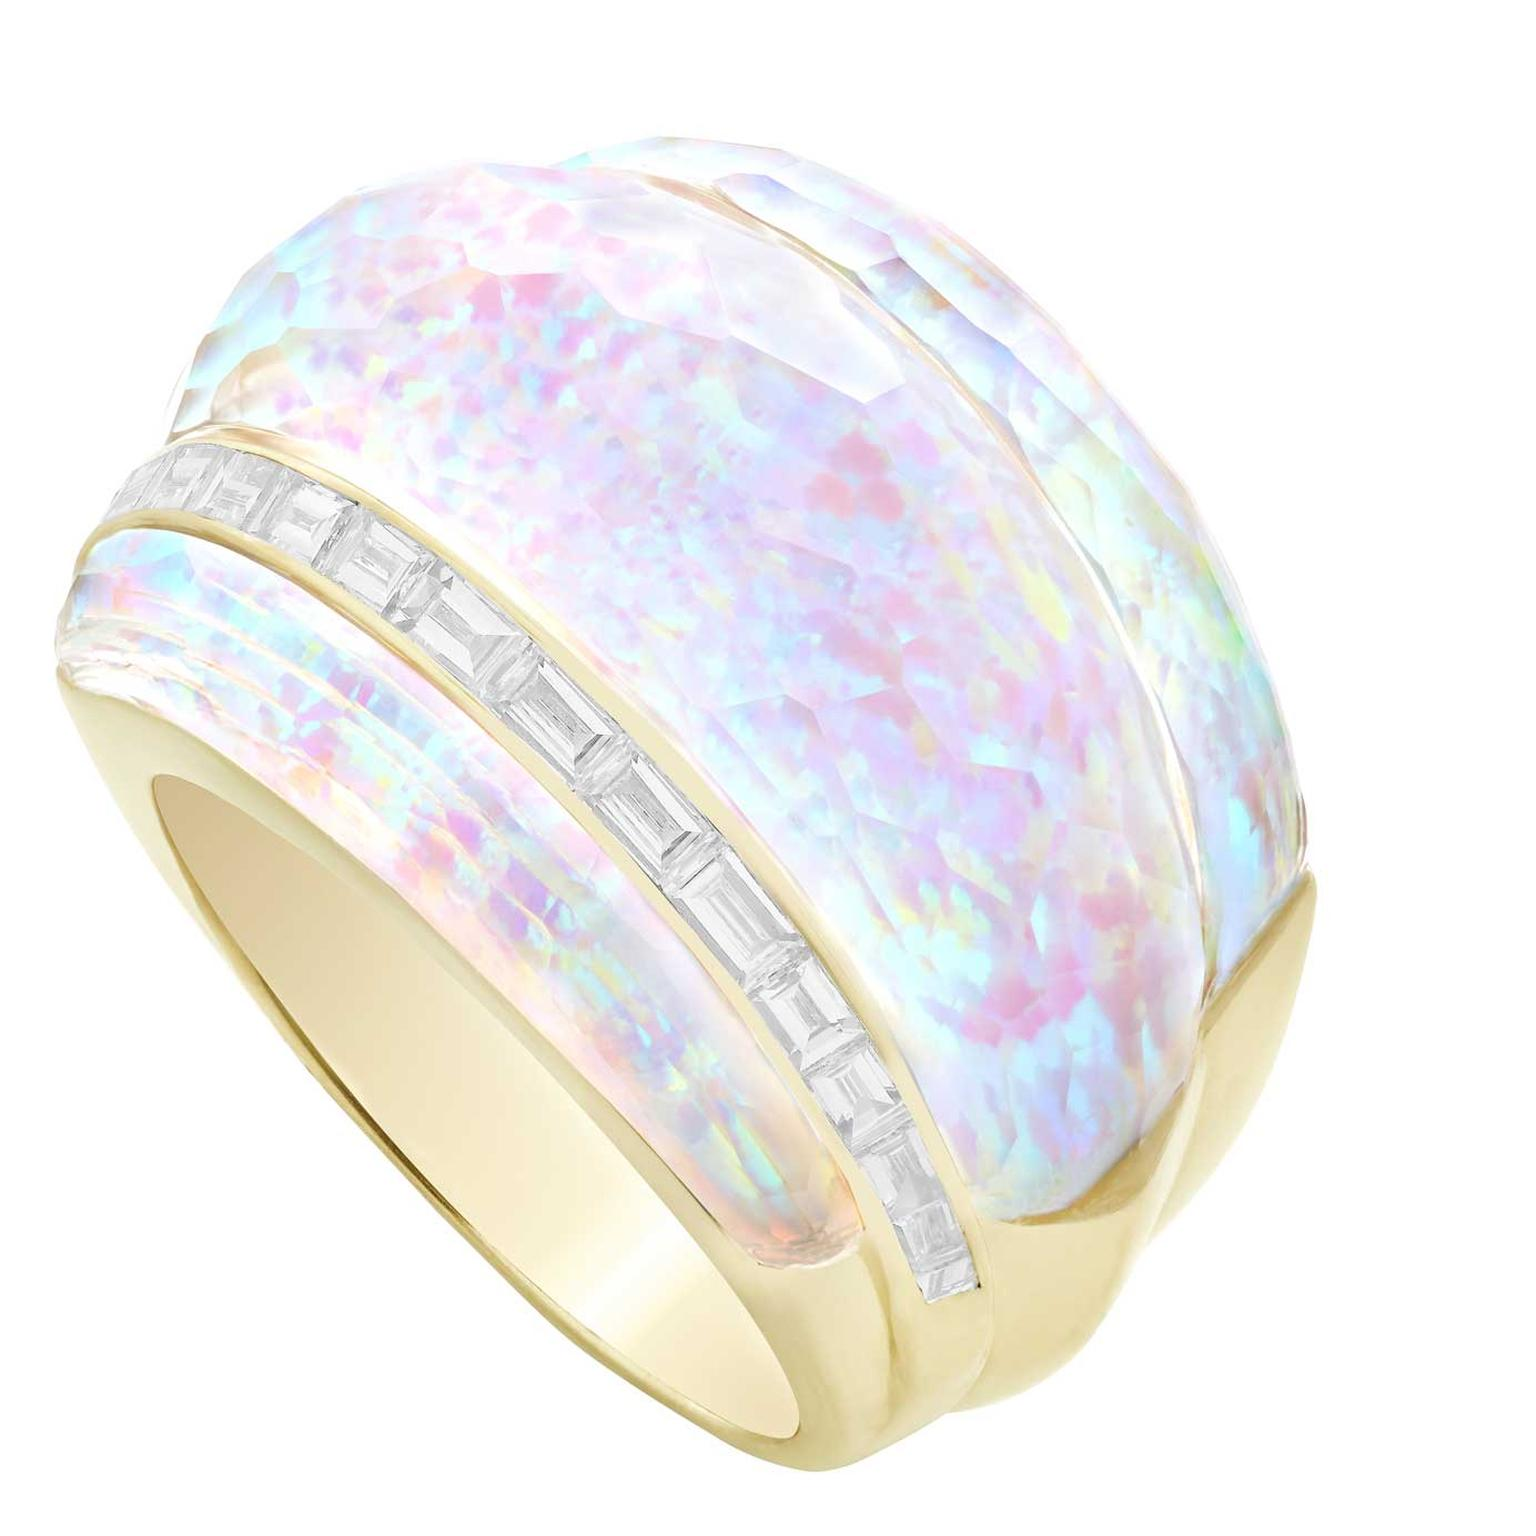 Stephen Webster CH2 cocktail ring opal and diamonds